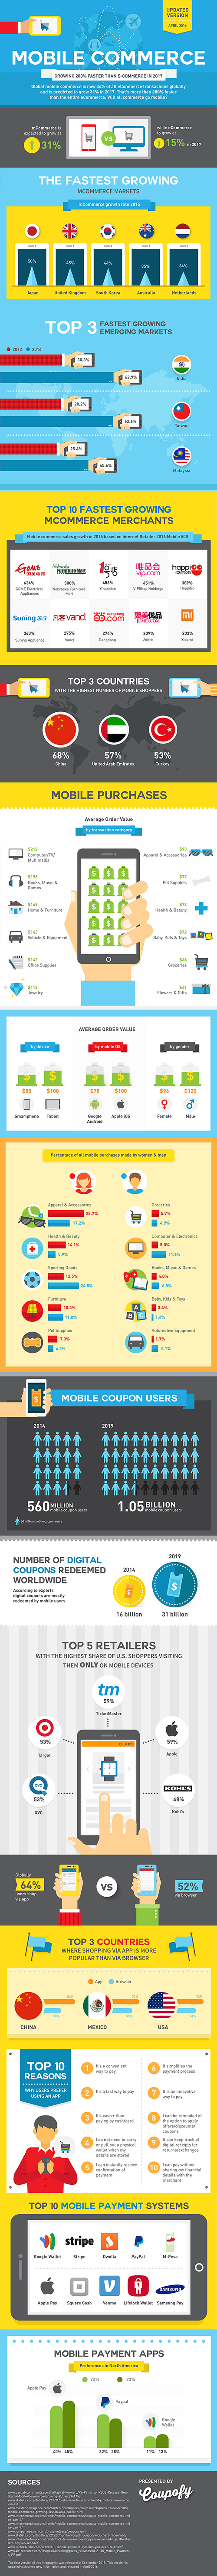 mCommerce-infographic_update_March16_w500px (1)